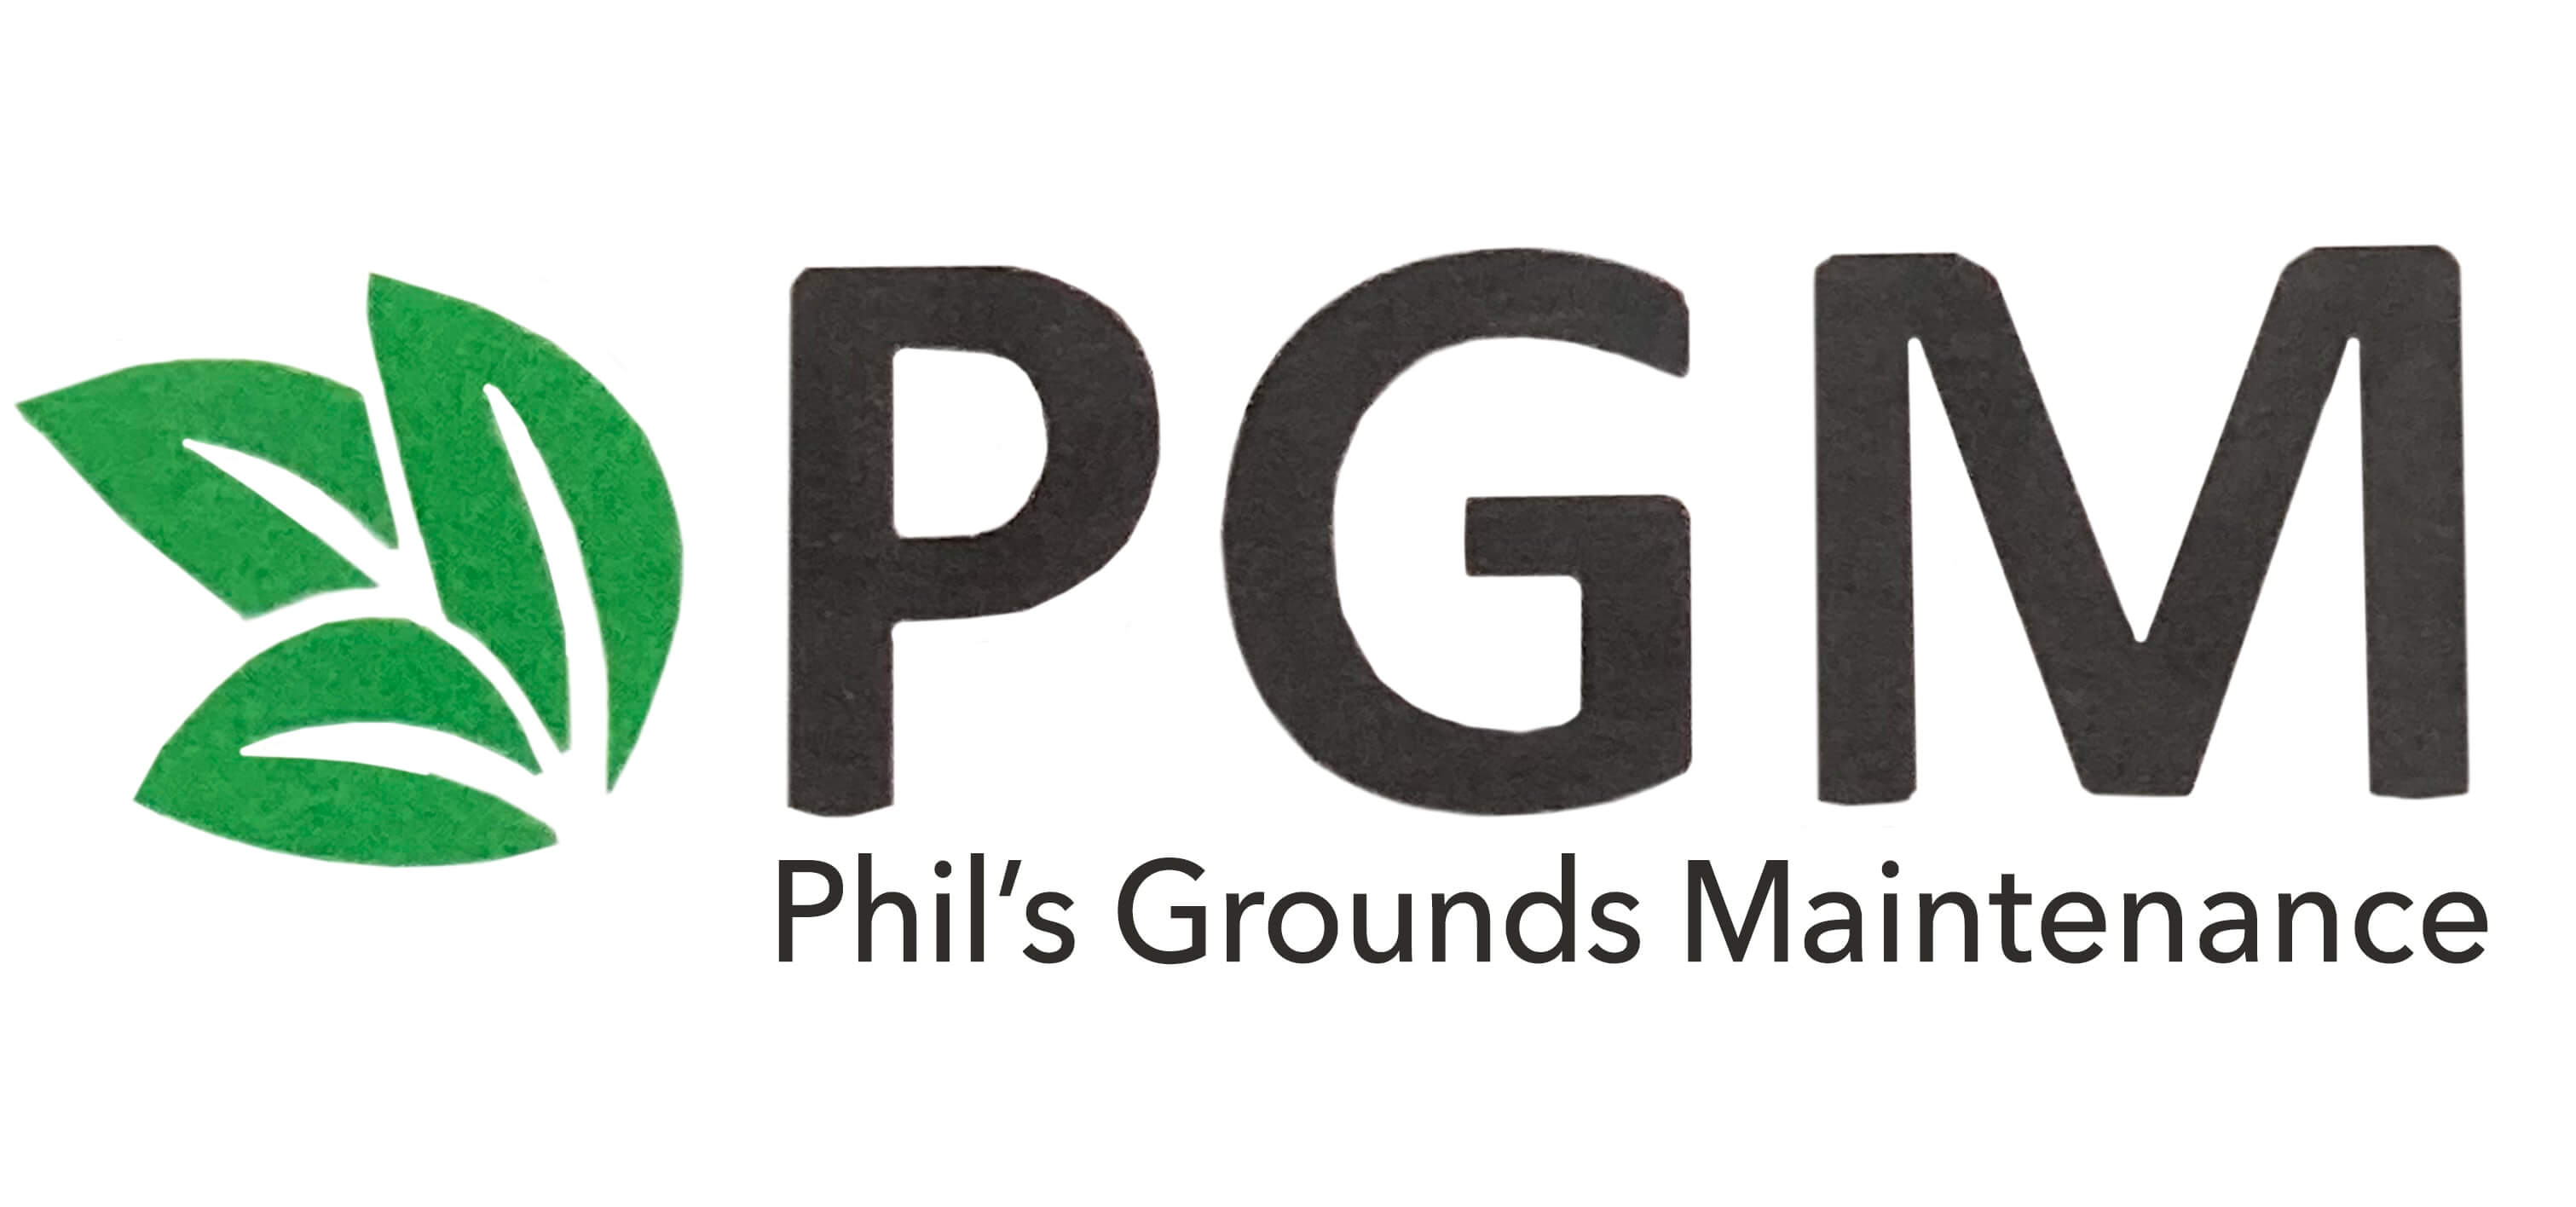 Phil's Grounds Maintenance Logo